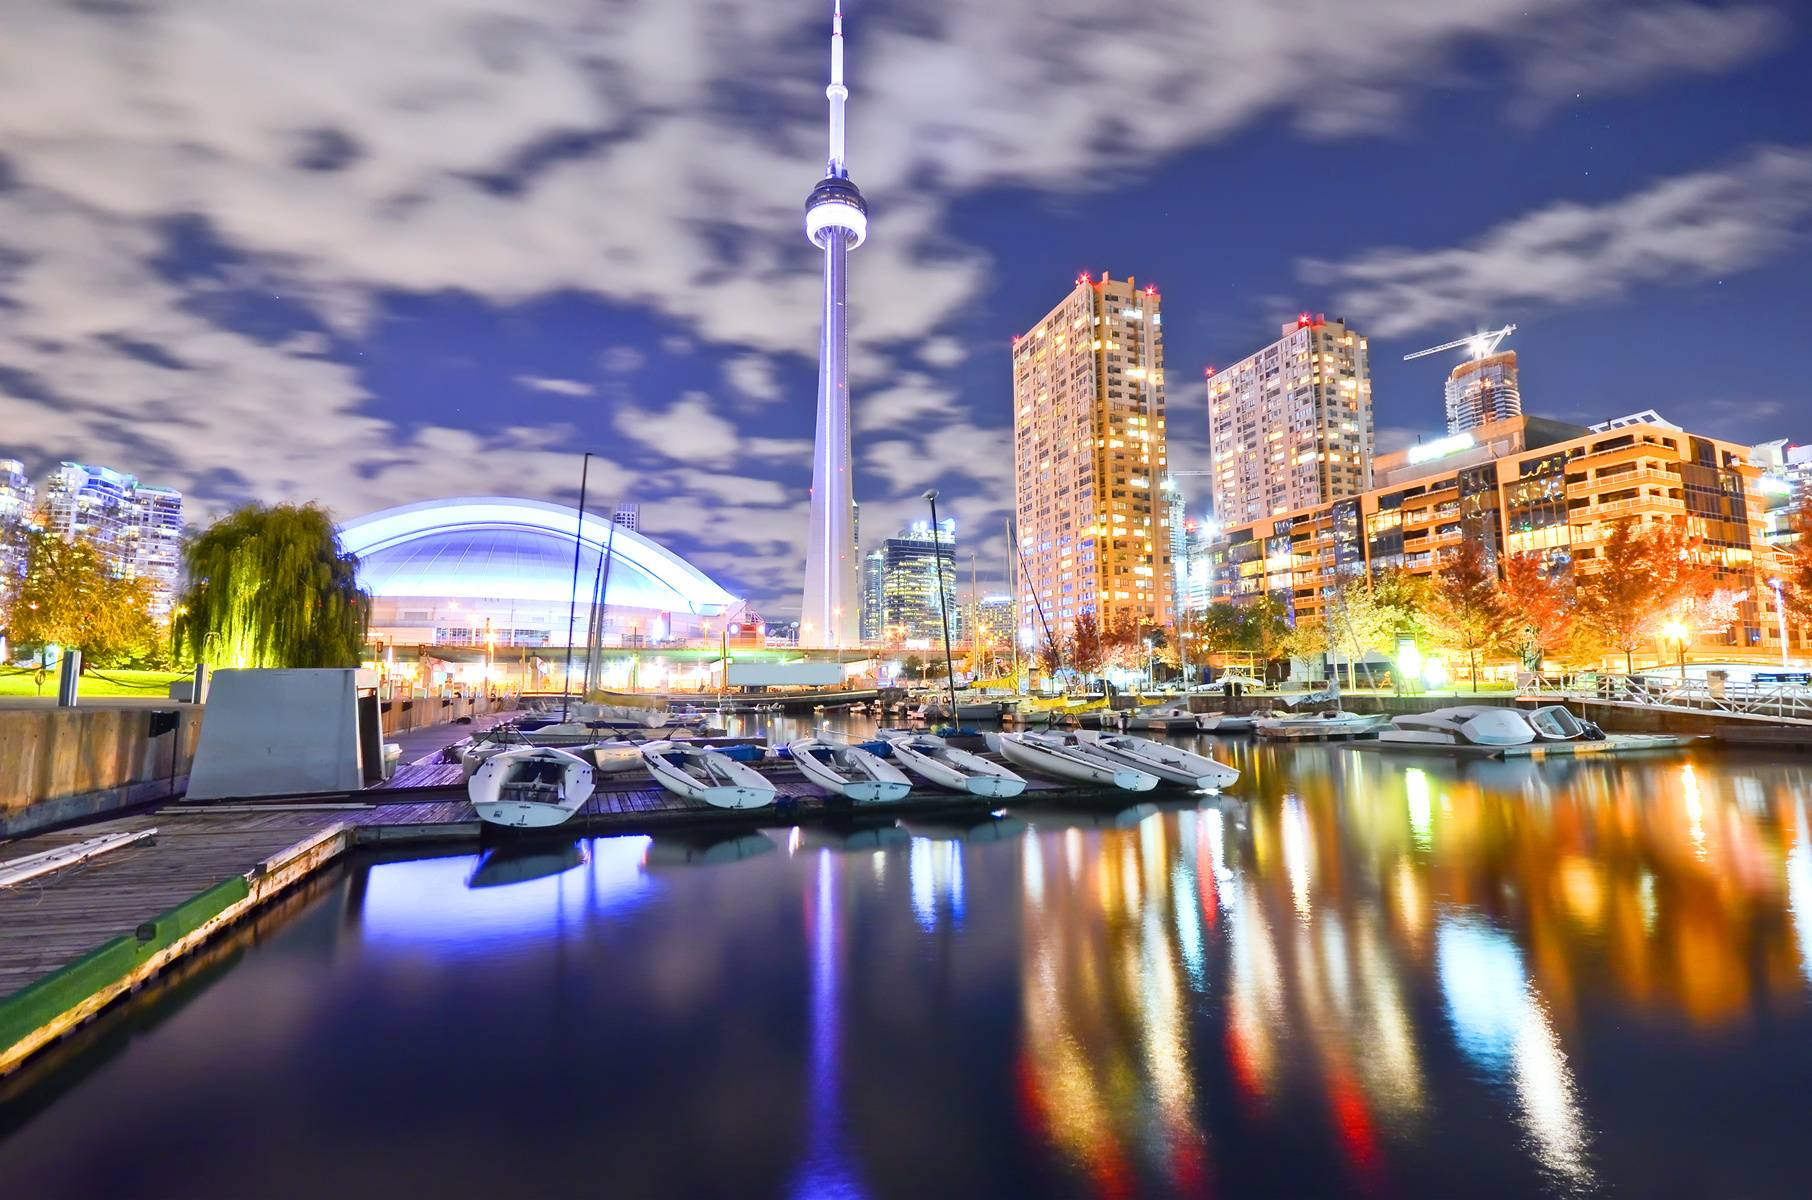 8-Day In-depth Eastern Canada Tour From Toronto